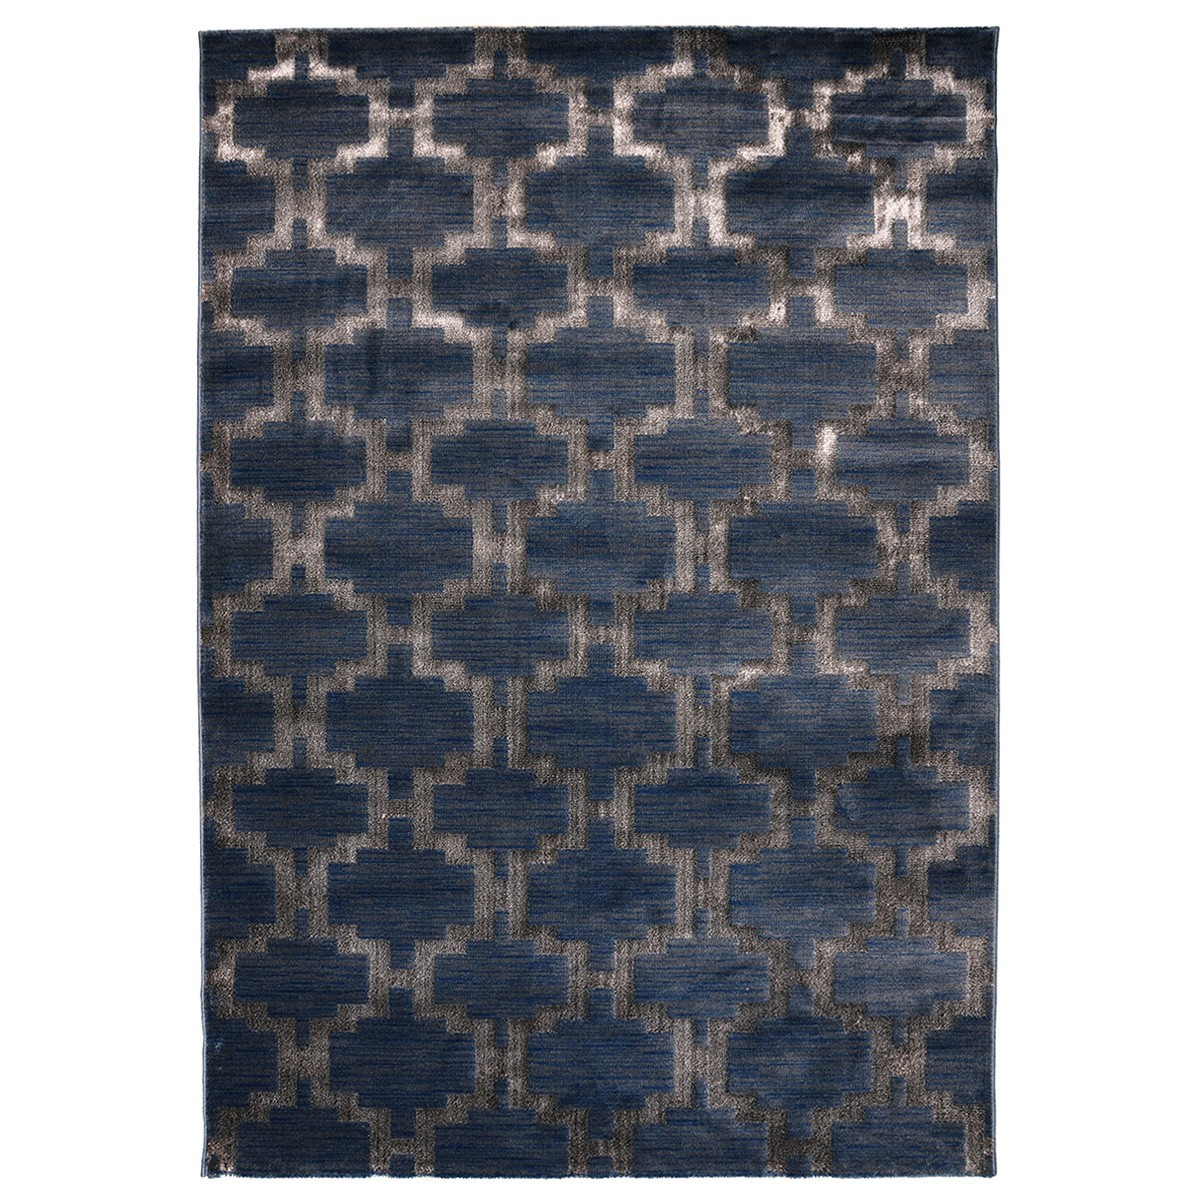 Aquarelle Newy High Sheer Modern Rug, 230x160cm